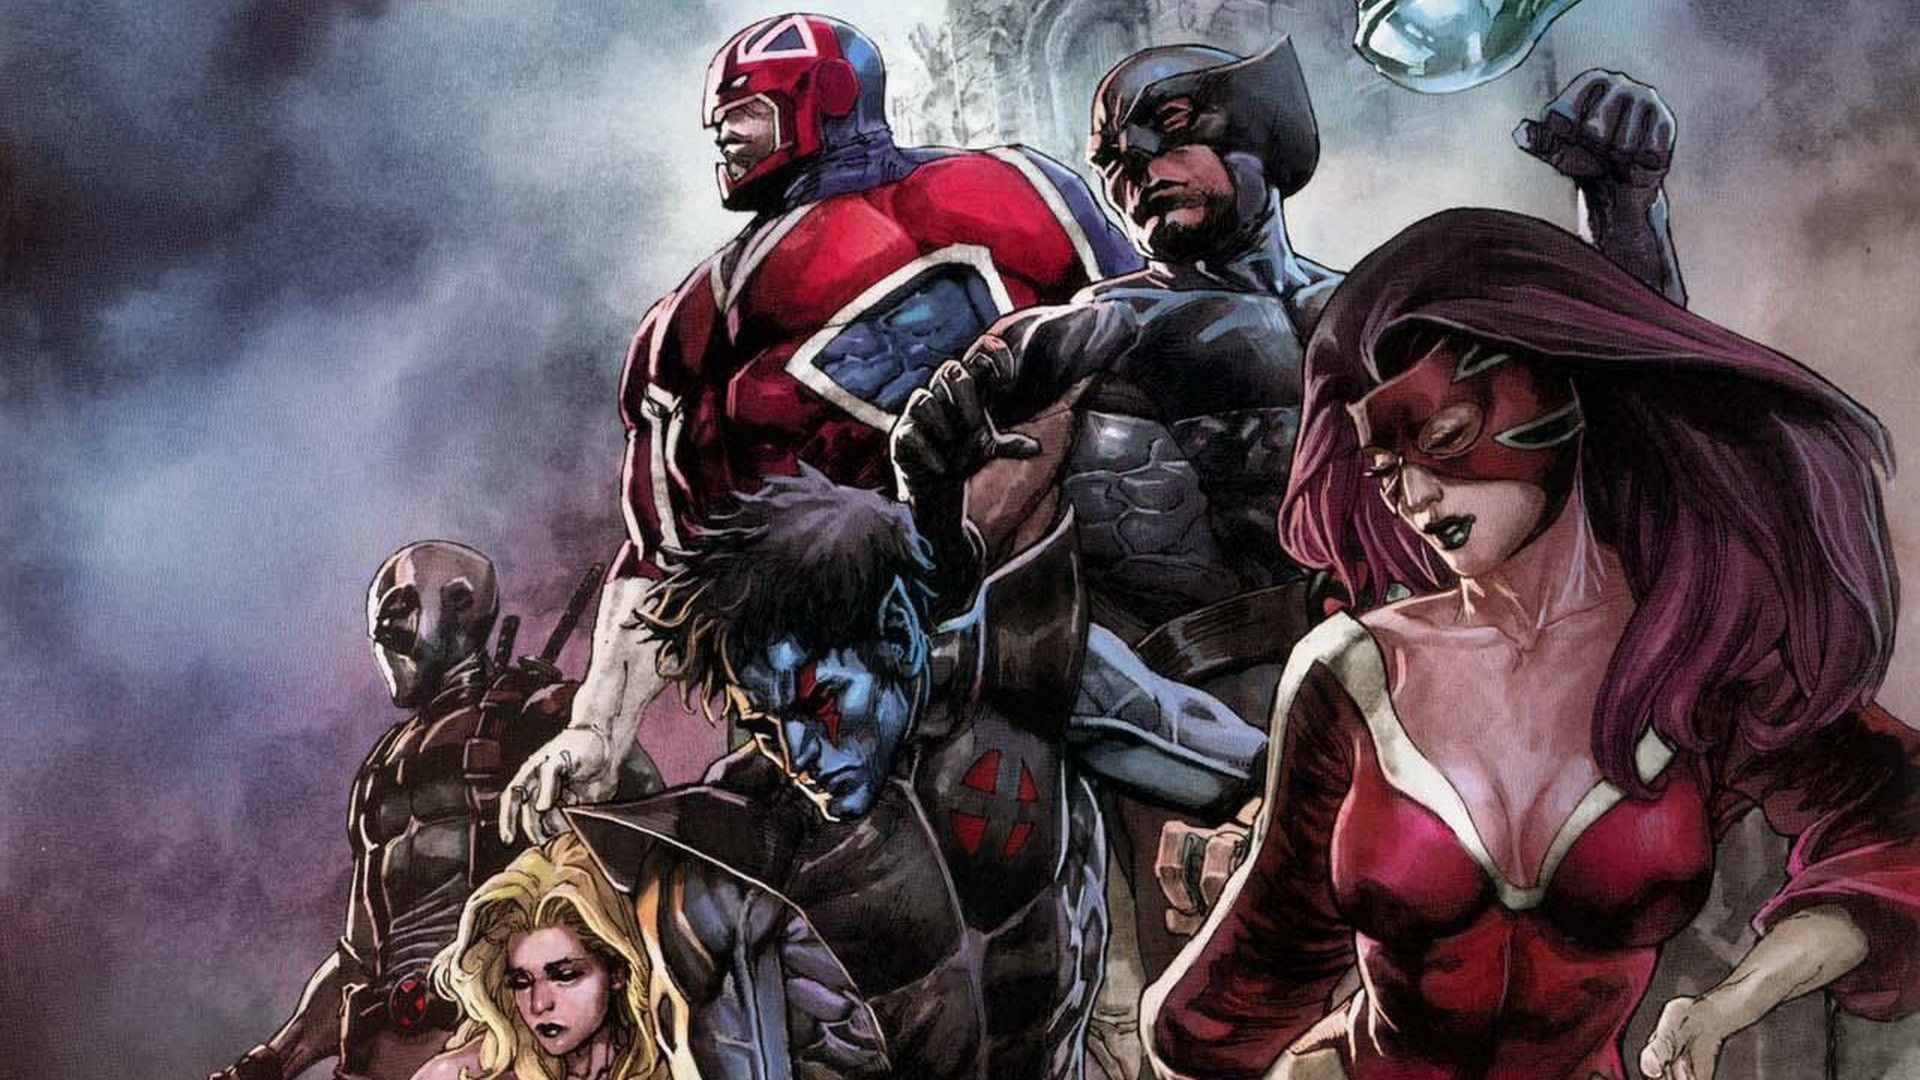 Cool Wallpaper Marvel Cable - 4c691576d0780ba7e239e8bce322aa03  Perfect Image Reference_952957.jpg